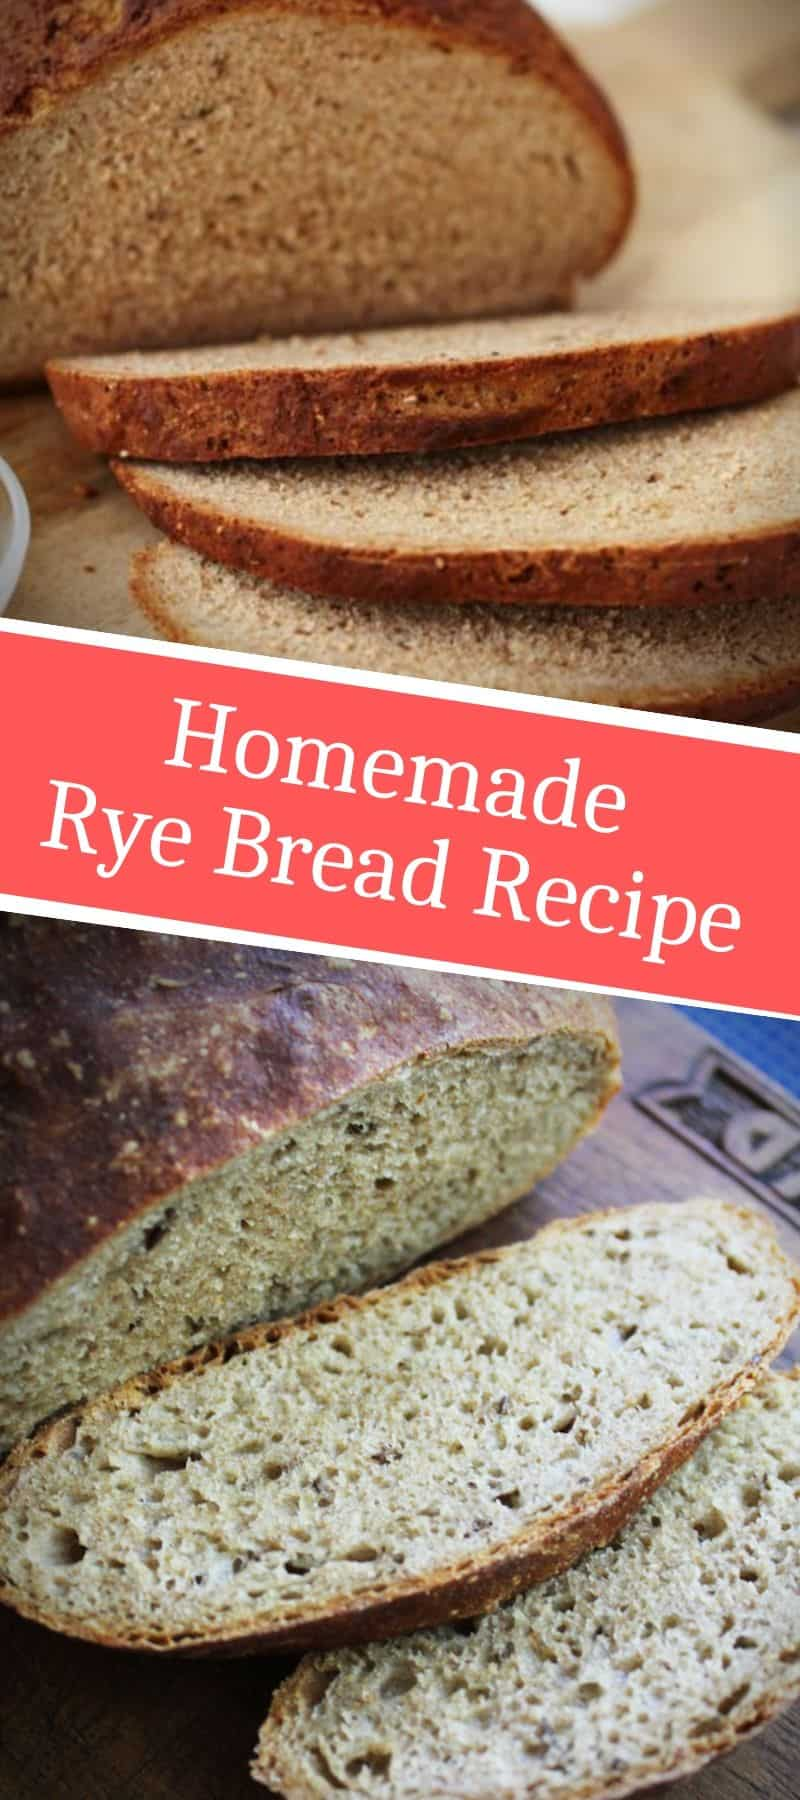 Homemade Rye Bread Recipe 3